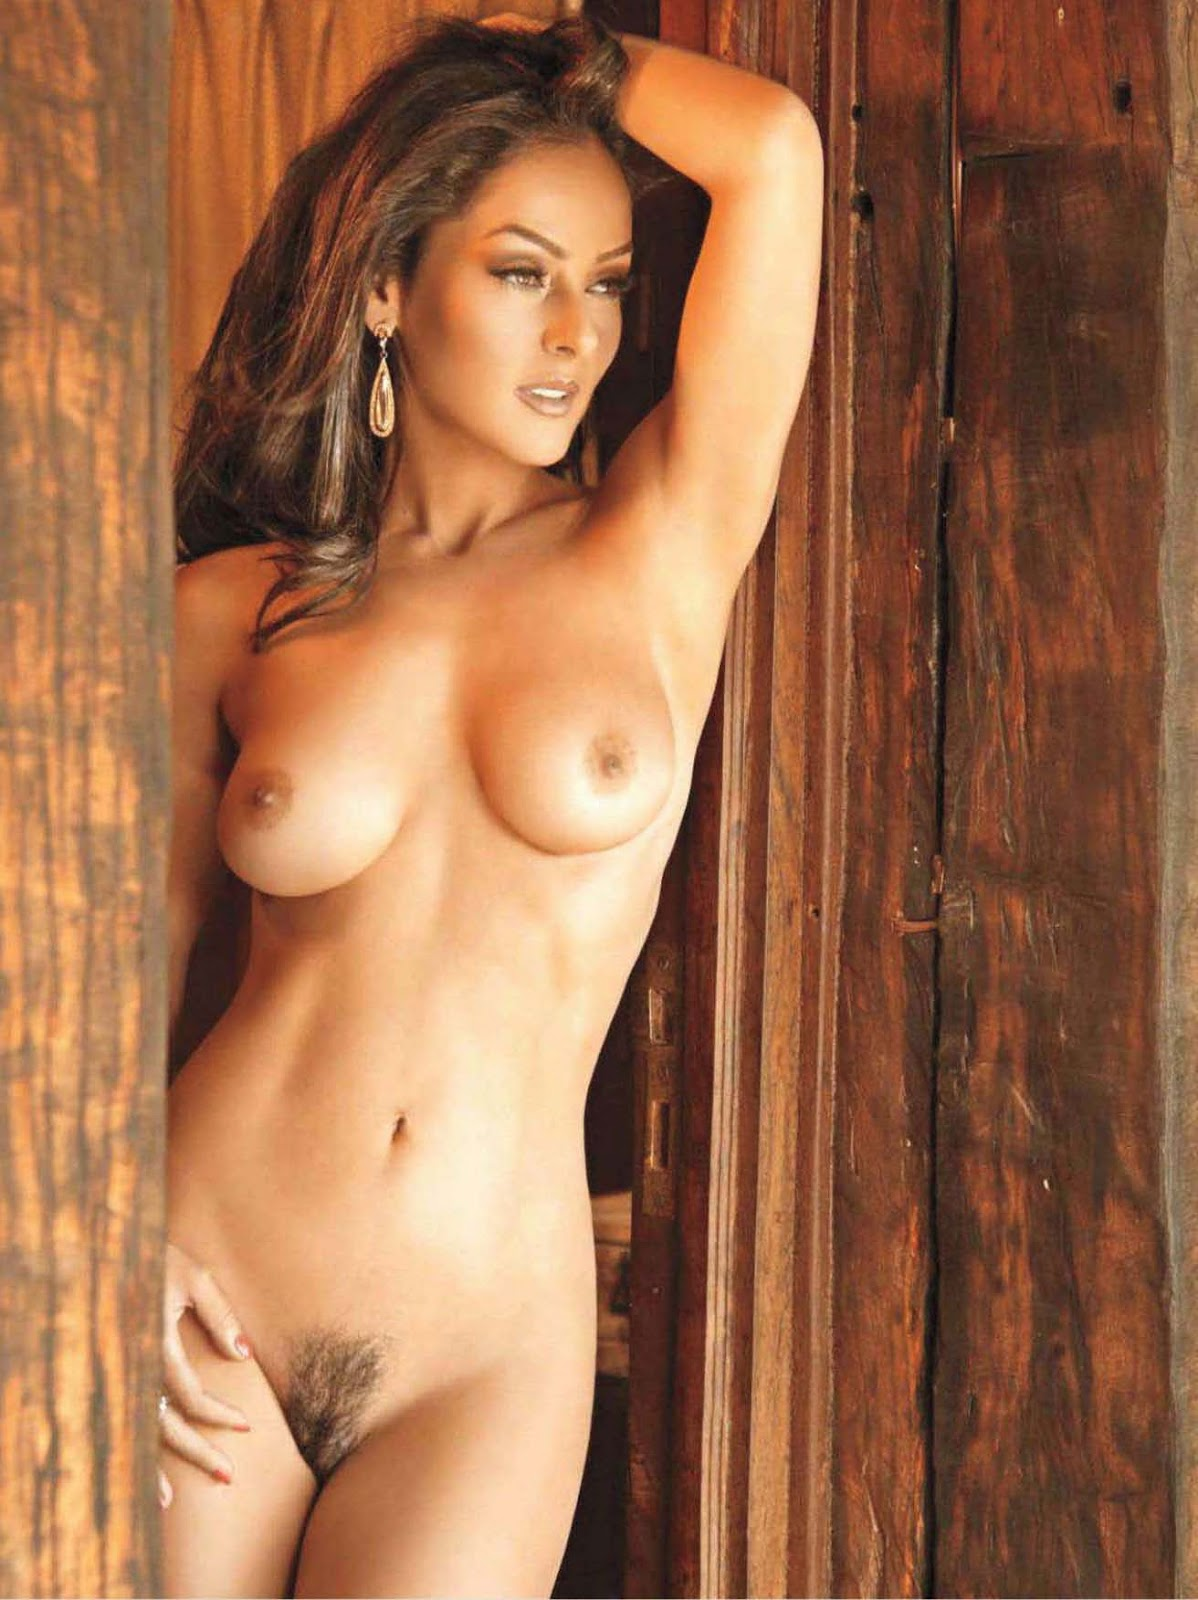 mexican playmate nude pics